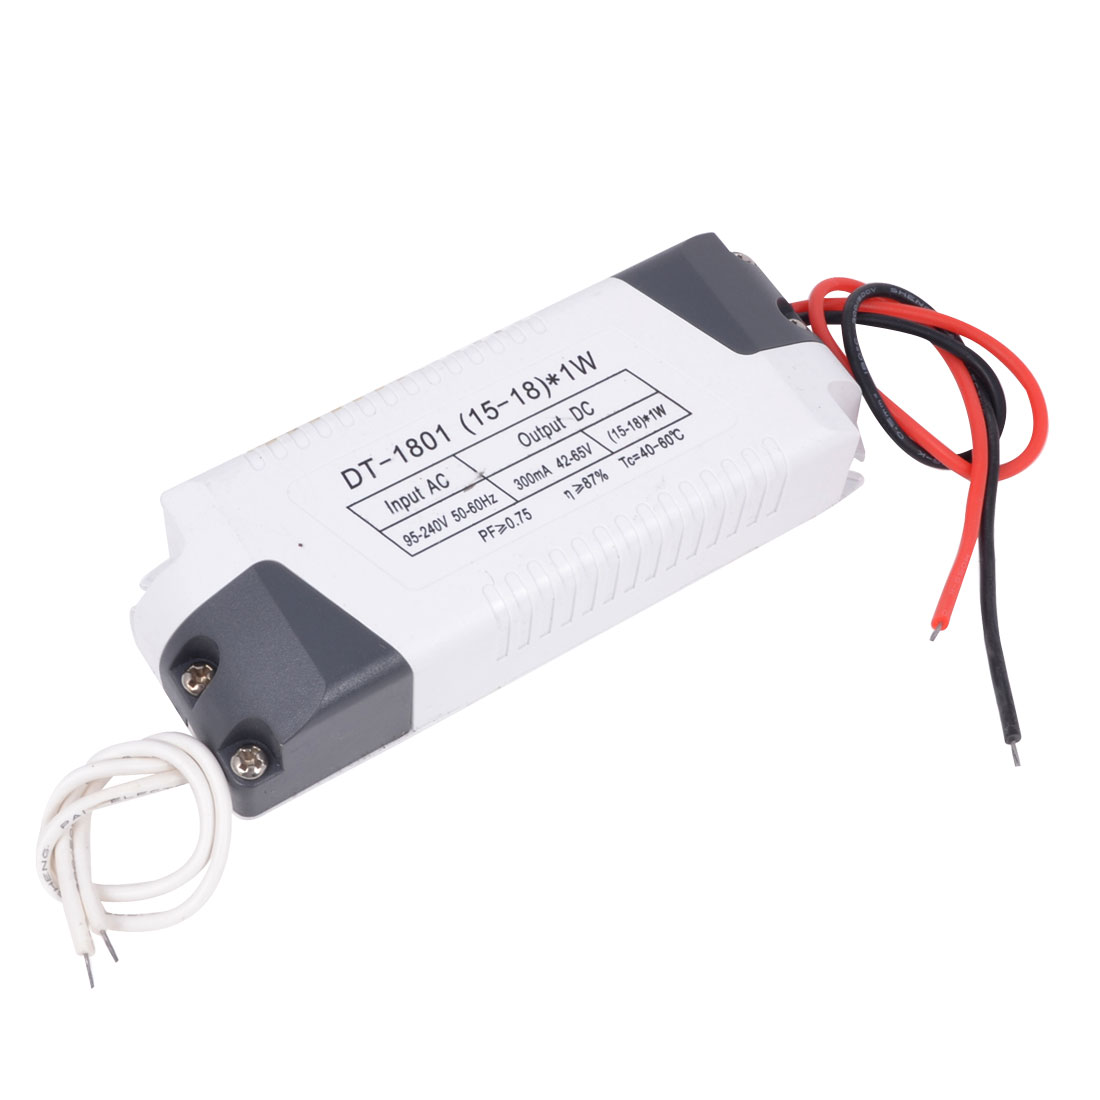 DC 42-65V (15-18)x1W LED Driver Circuit Transformer Power Supply